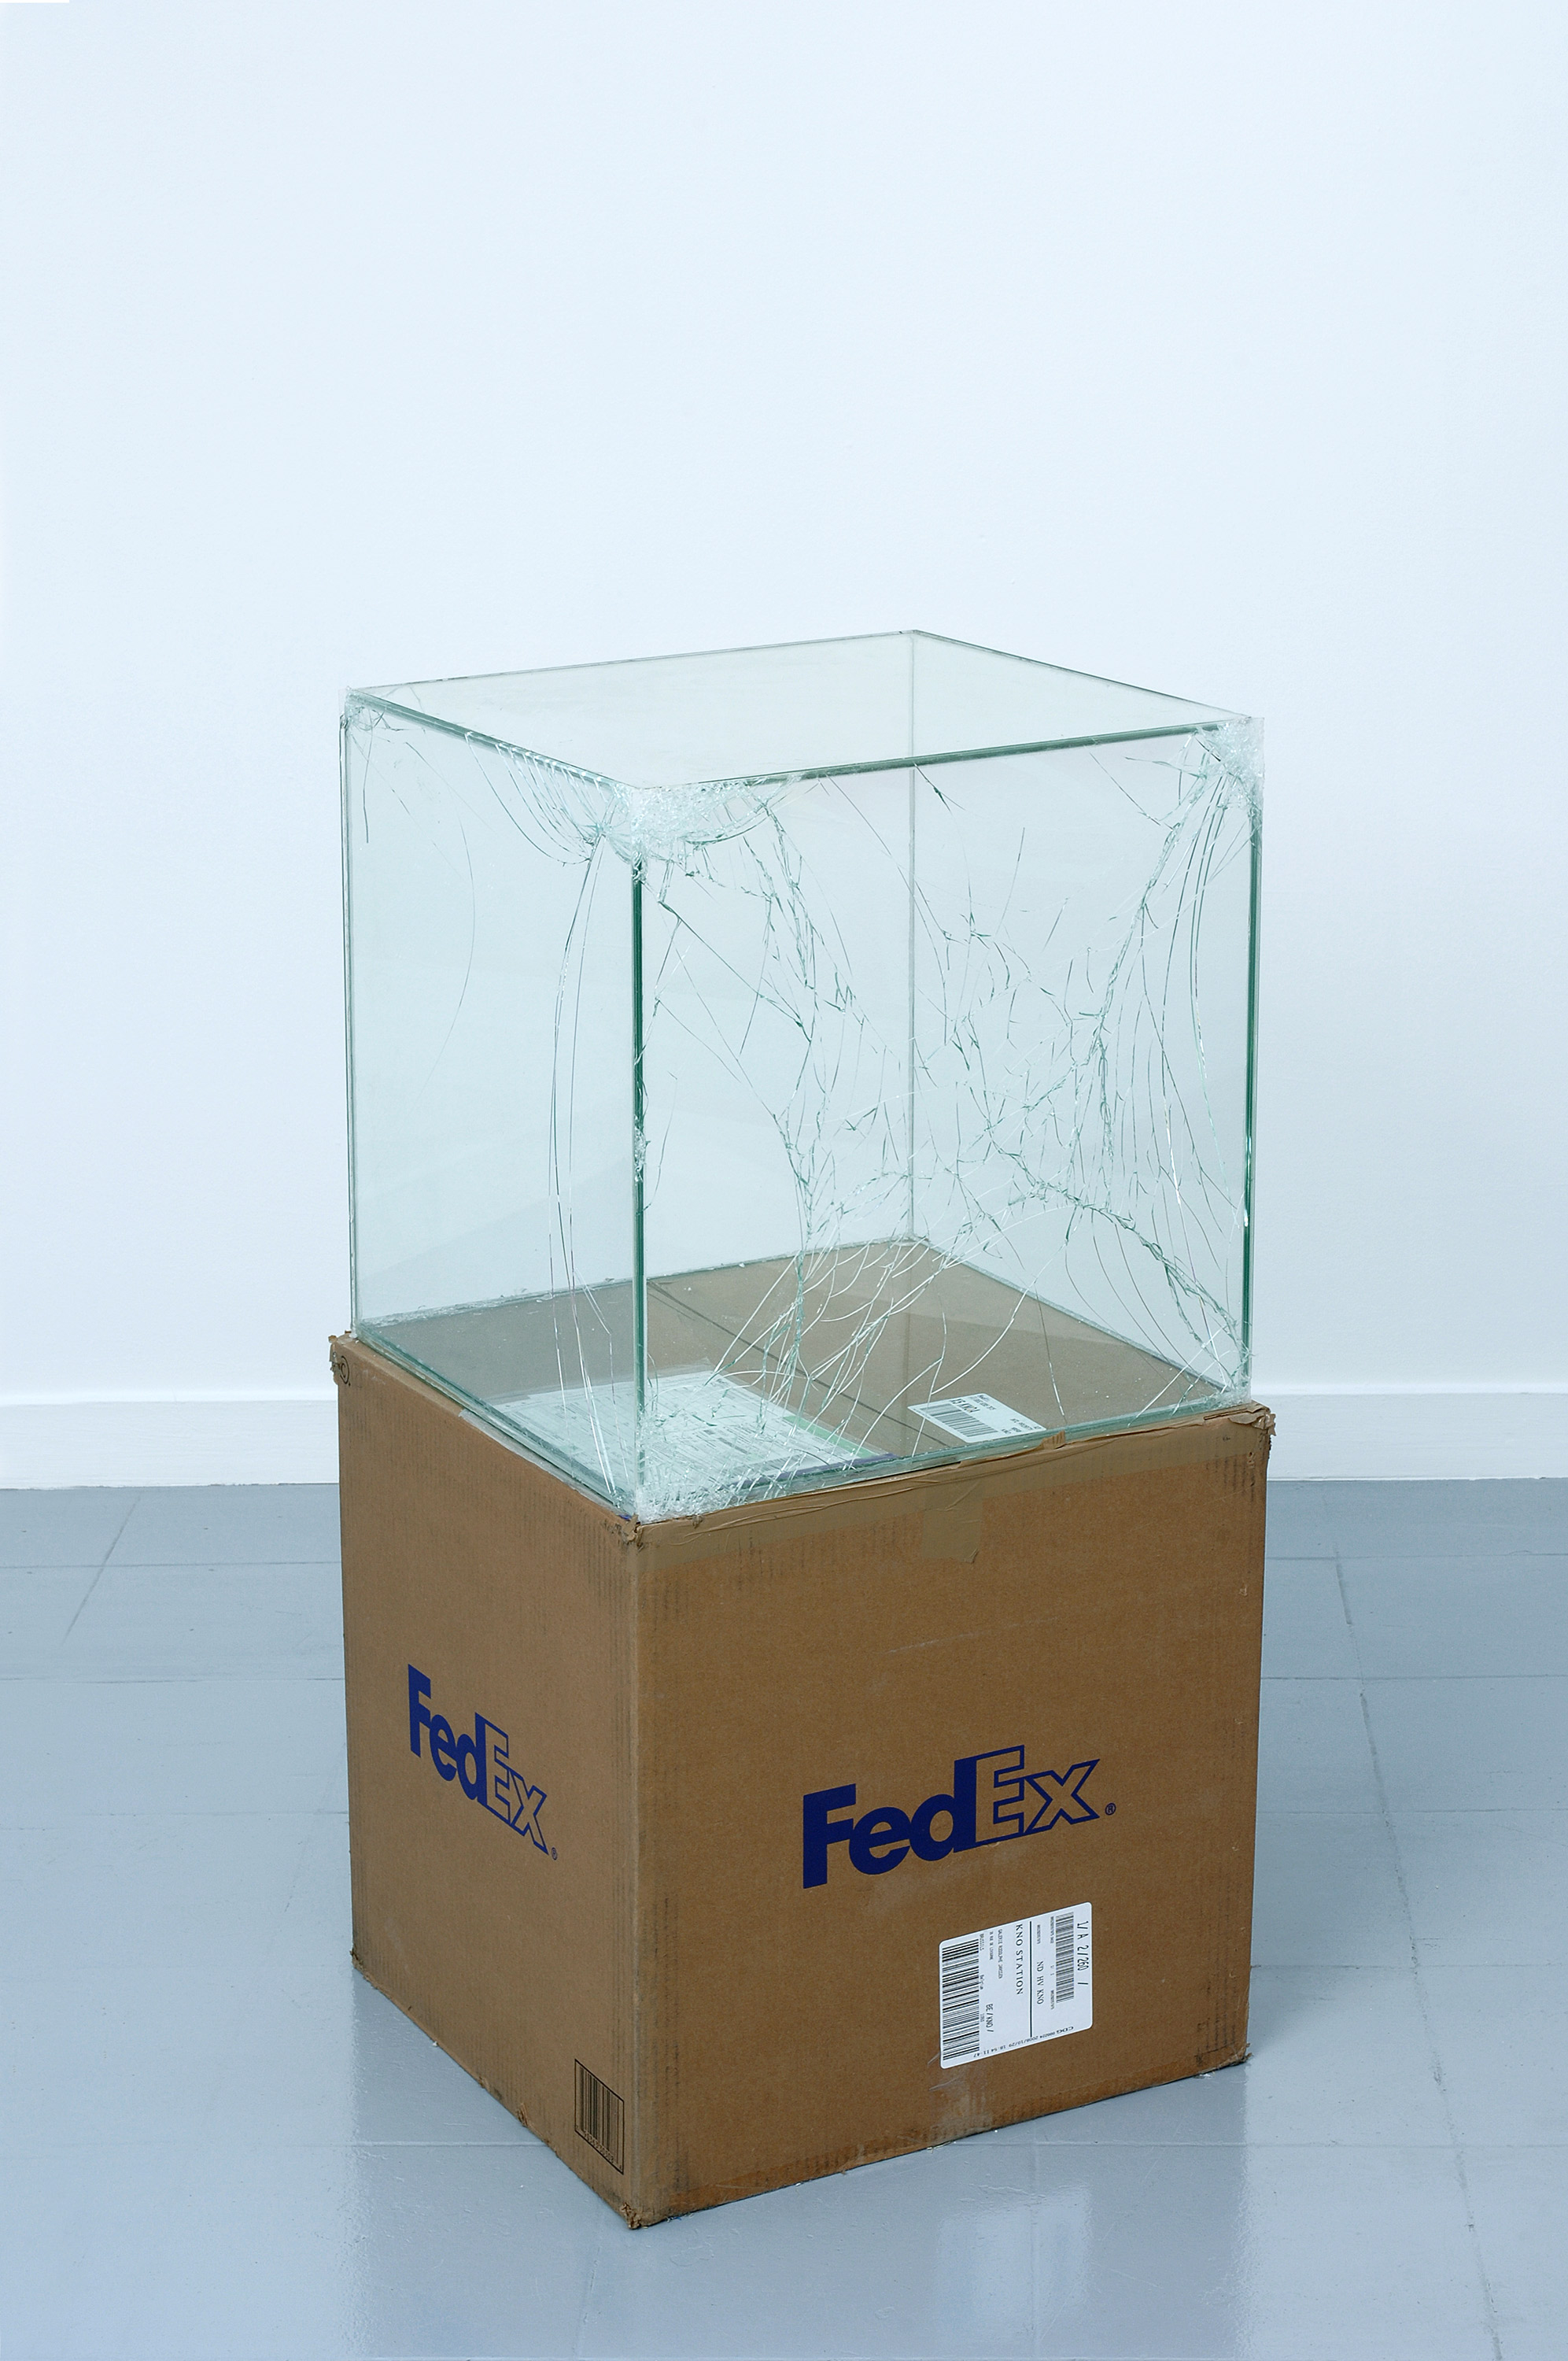 FedEx® Large Kraft Box  © 2005 FEDEX 330508 REV 10/05 SSCC, International Priority, Los Angeles–Brussels trk#865282057964, October 27–30, 2008, International Priority, Brussels–Los Angeles trk#866071746385, Janurary 8–9, 2009, Standard Overnight, Los Angeles–New York trk#872632033108, April 29–30, 2010, Standard Overnight, New York–Los Angeles trk#796210730703, September 2–3, 2010, Priority Overnight, Los Angeles–New York trk#794583197877, March 28–29, 2011, Priority Overnight, New York–Los Angeles trk#611849858596, January 13–14, 2015   2008–  Laminated glass, FedEx shipping box, accrued FedEx shipping and tracking labels, silicone, metal, and tape  20 x 20 x 20 inches   FedEx Glass Works, 2007–    Industrial Pictures, 2008